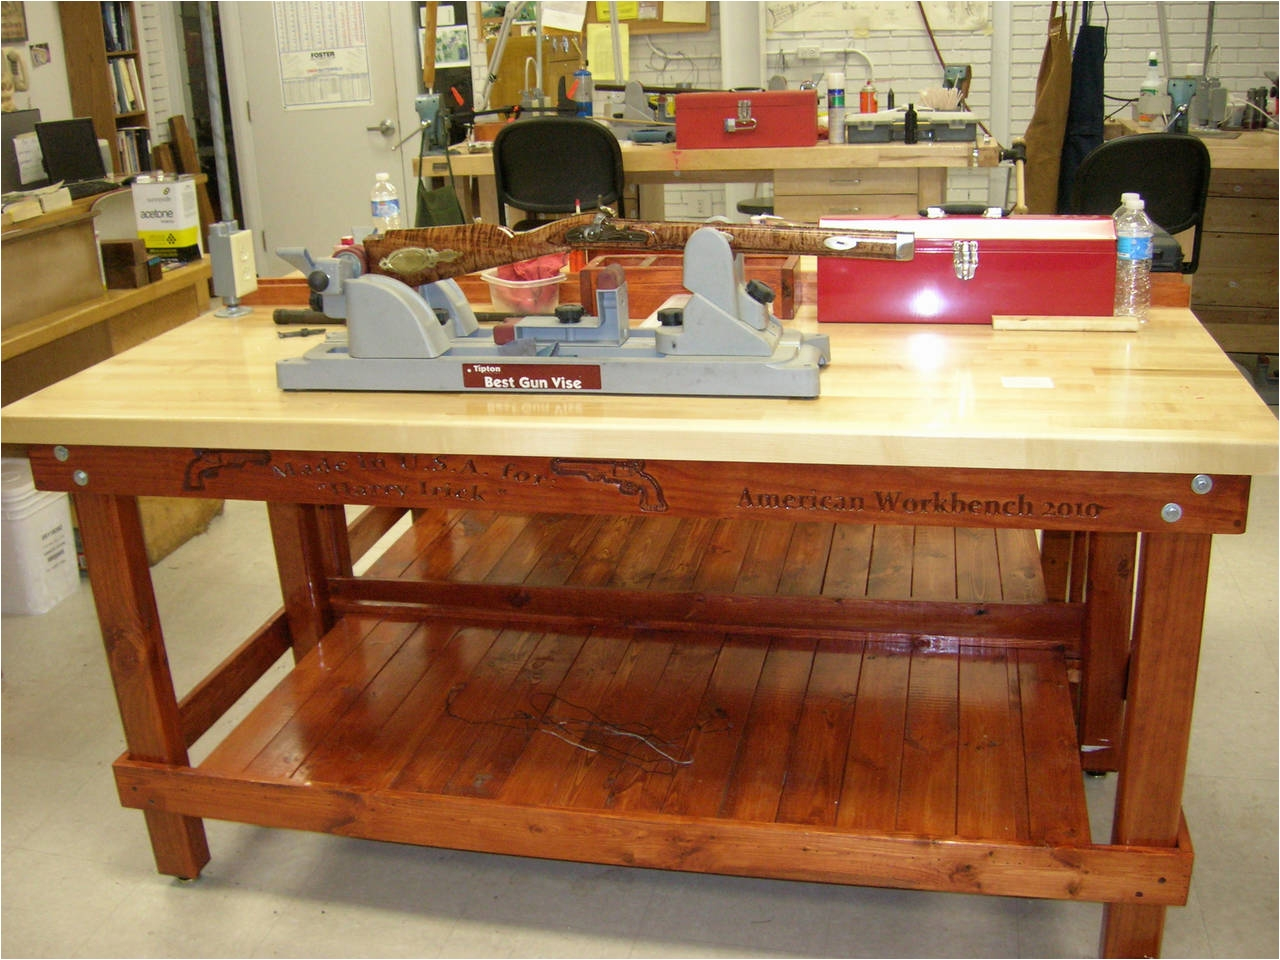 american workbench awesome table craftsman work bench for versatile working environment aasp